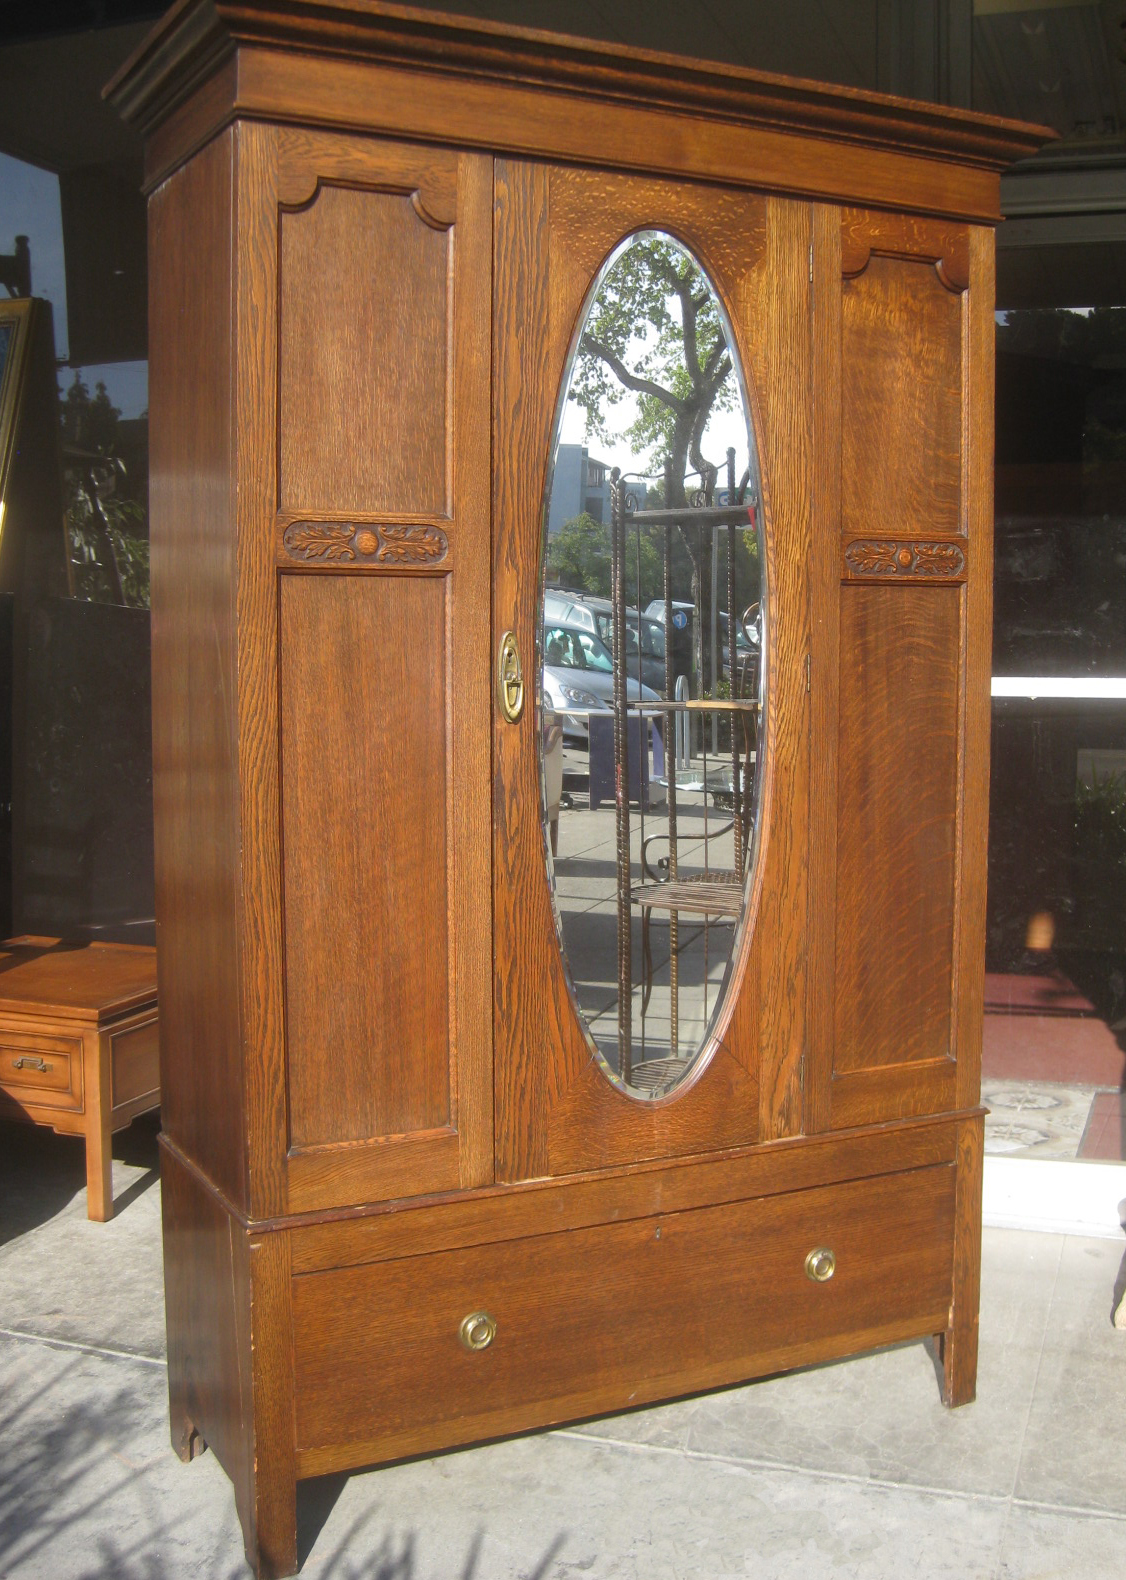 Marvelous photograph of UHURU FURNITURE & COLLECTIBLES: SOLD Antique Clothing Armoire $325 with #986133 color and 1126x1580 pixels